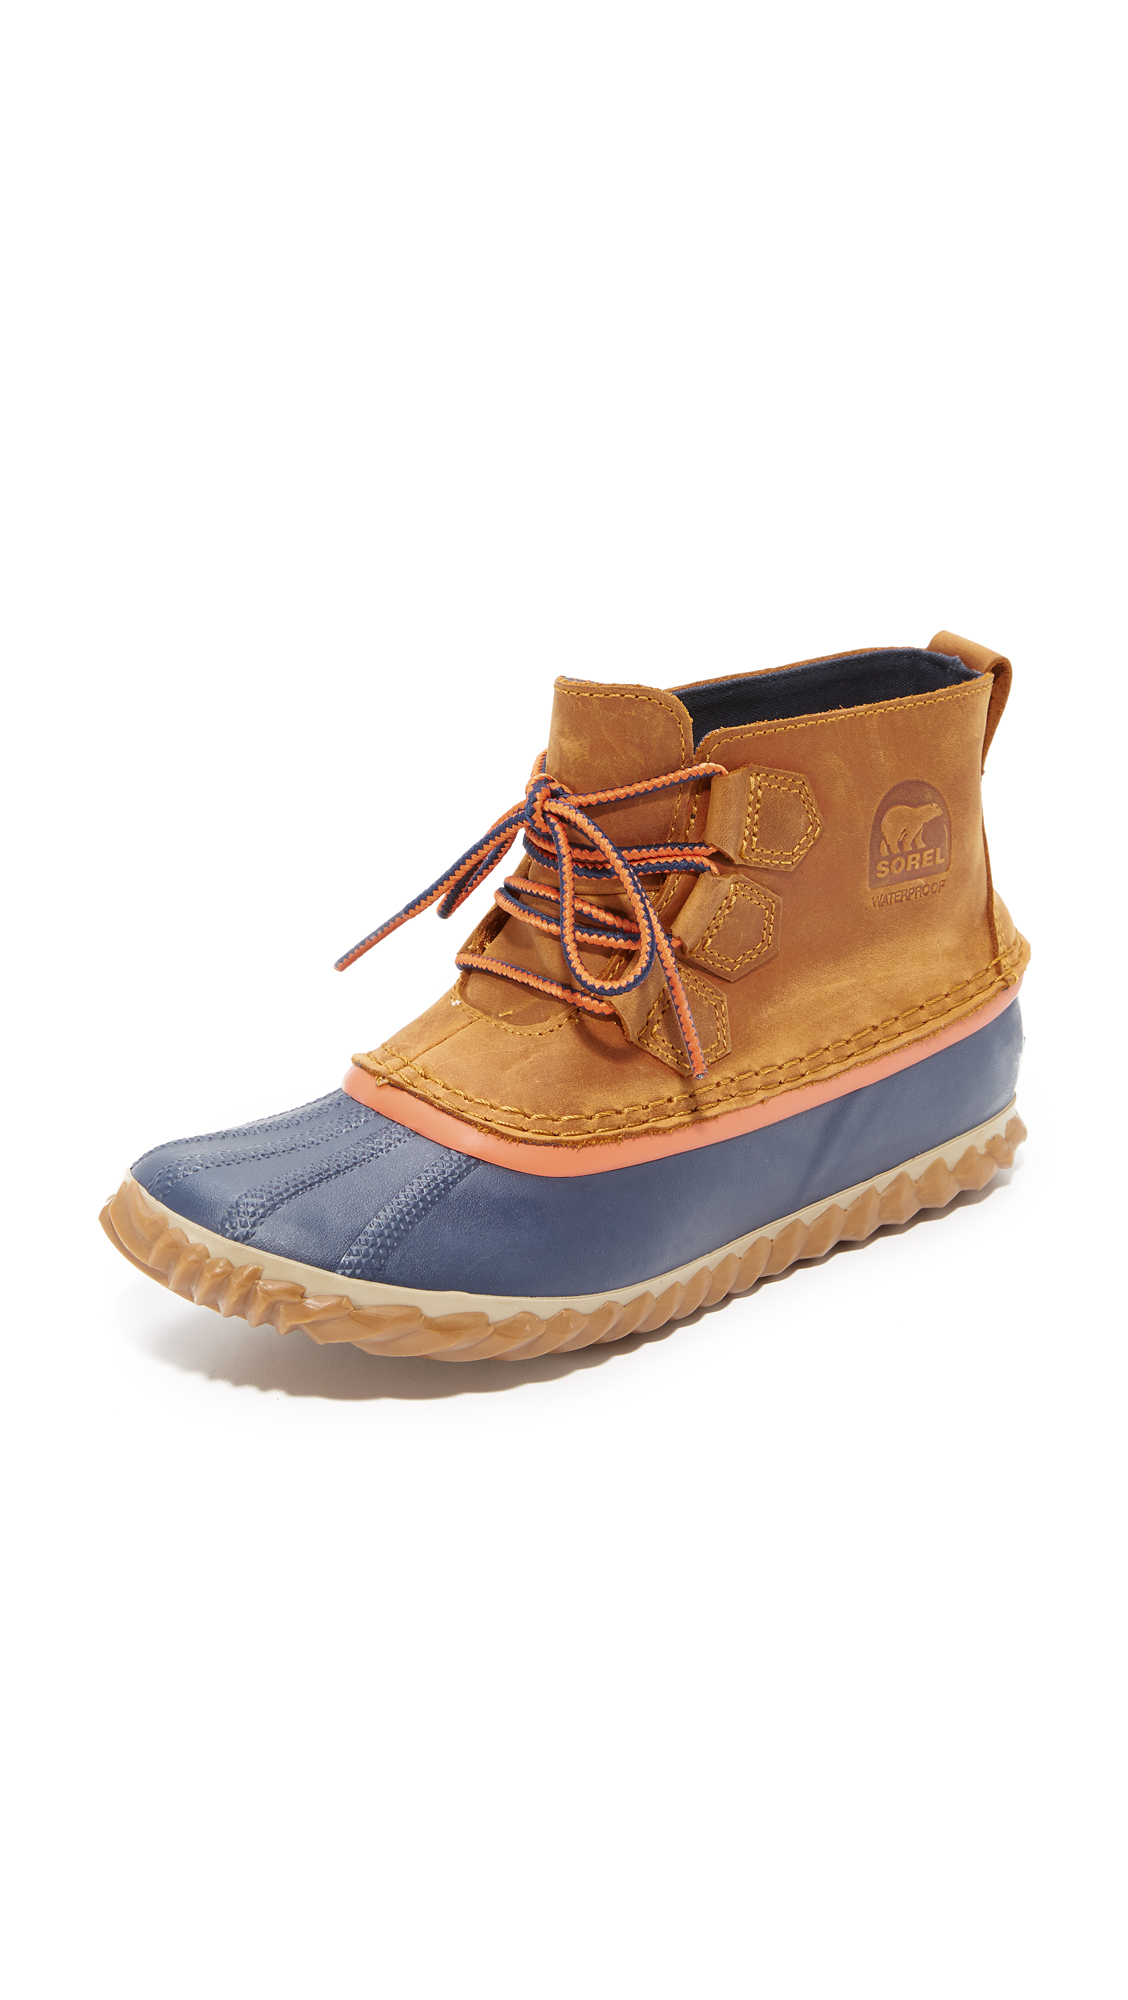 Sorel Out n About Booties - Caramel